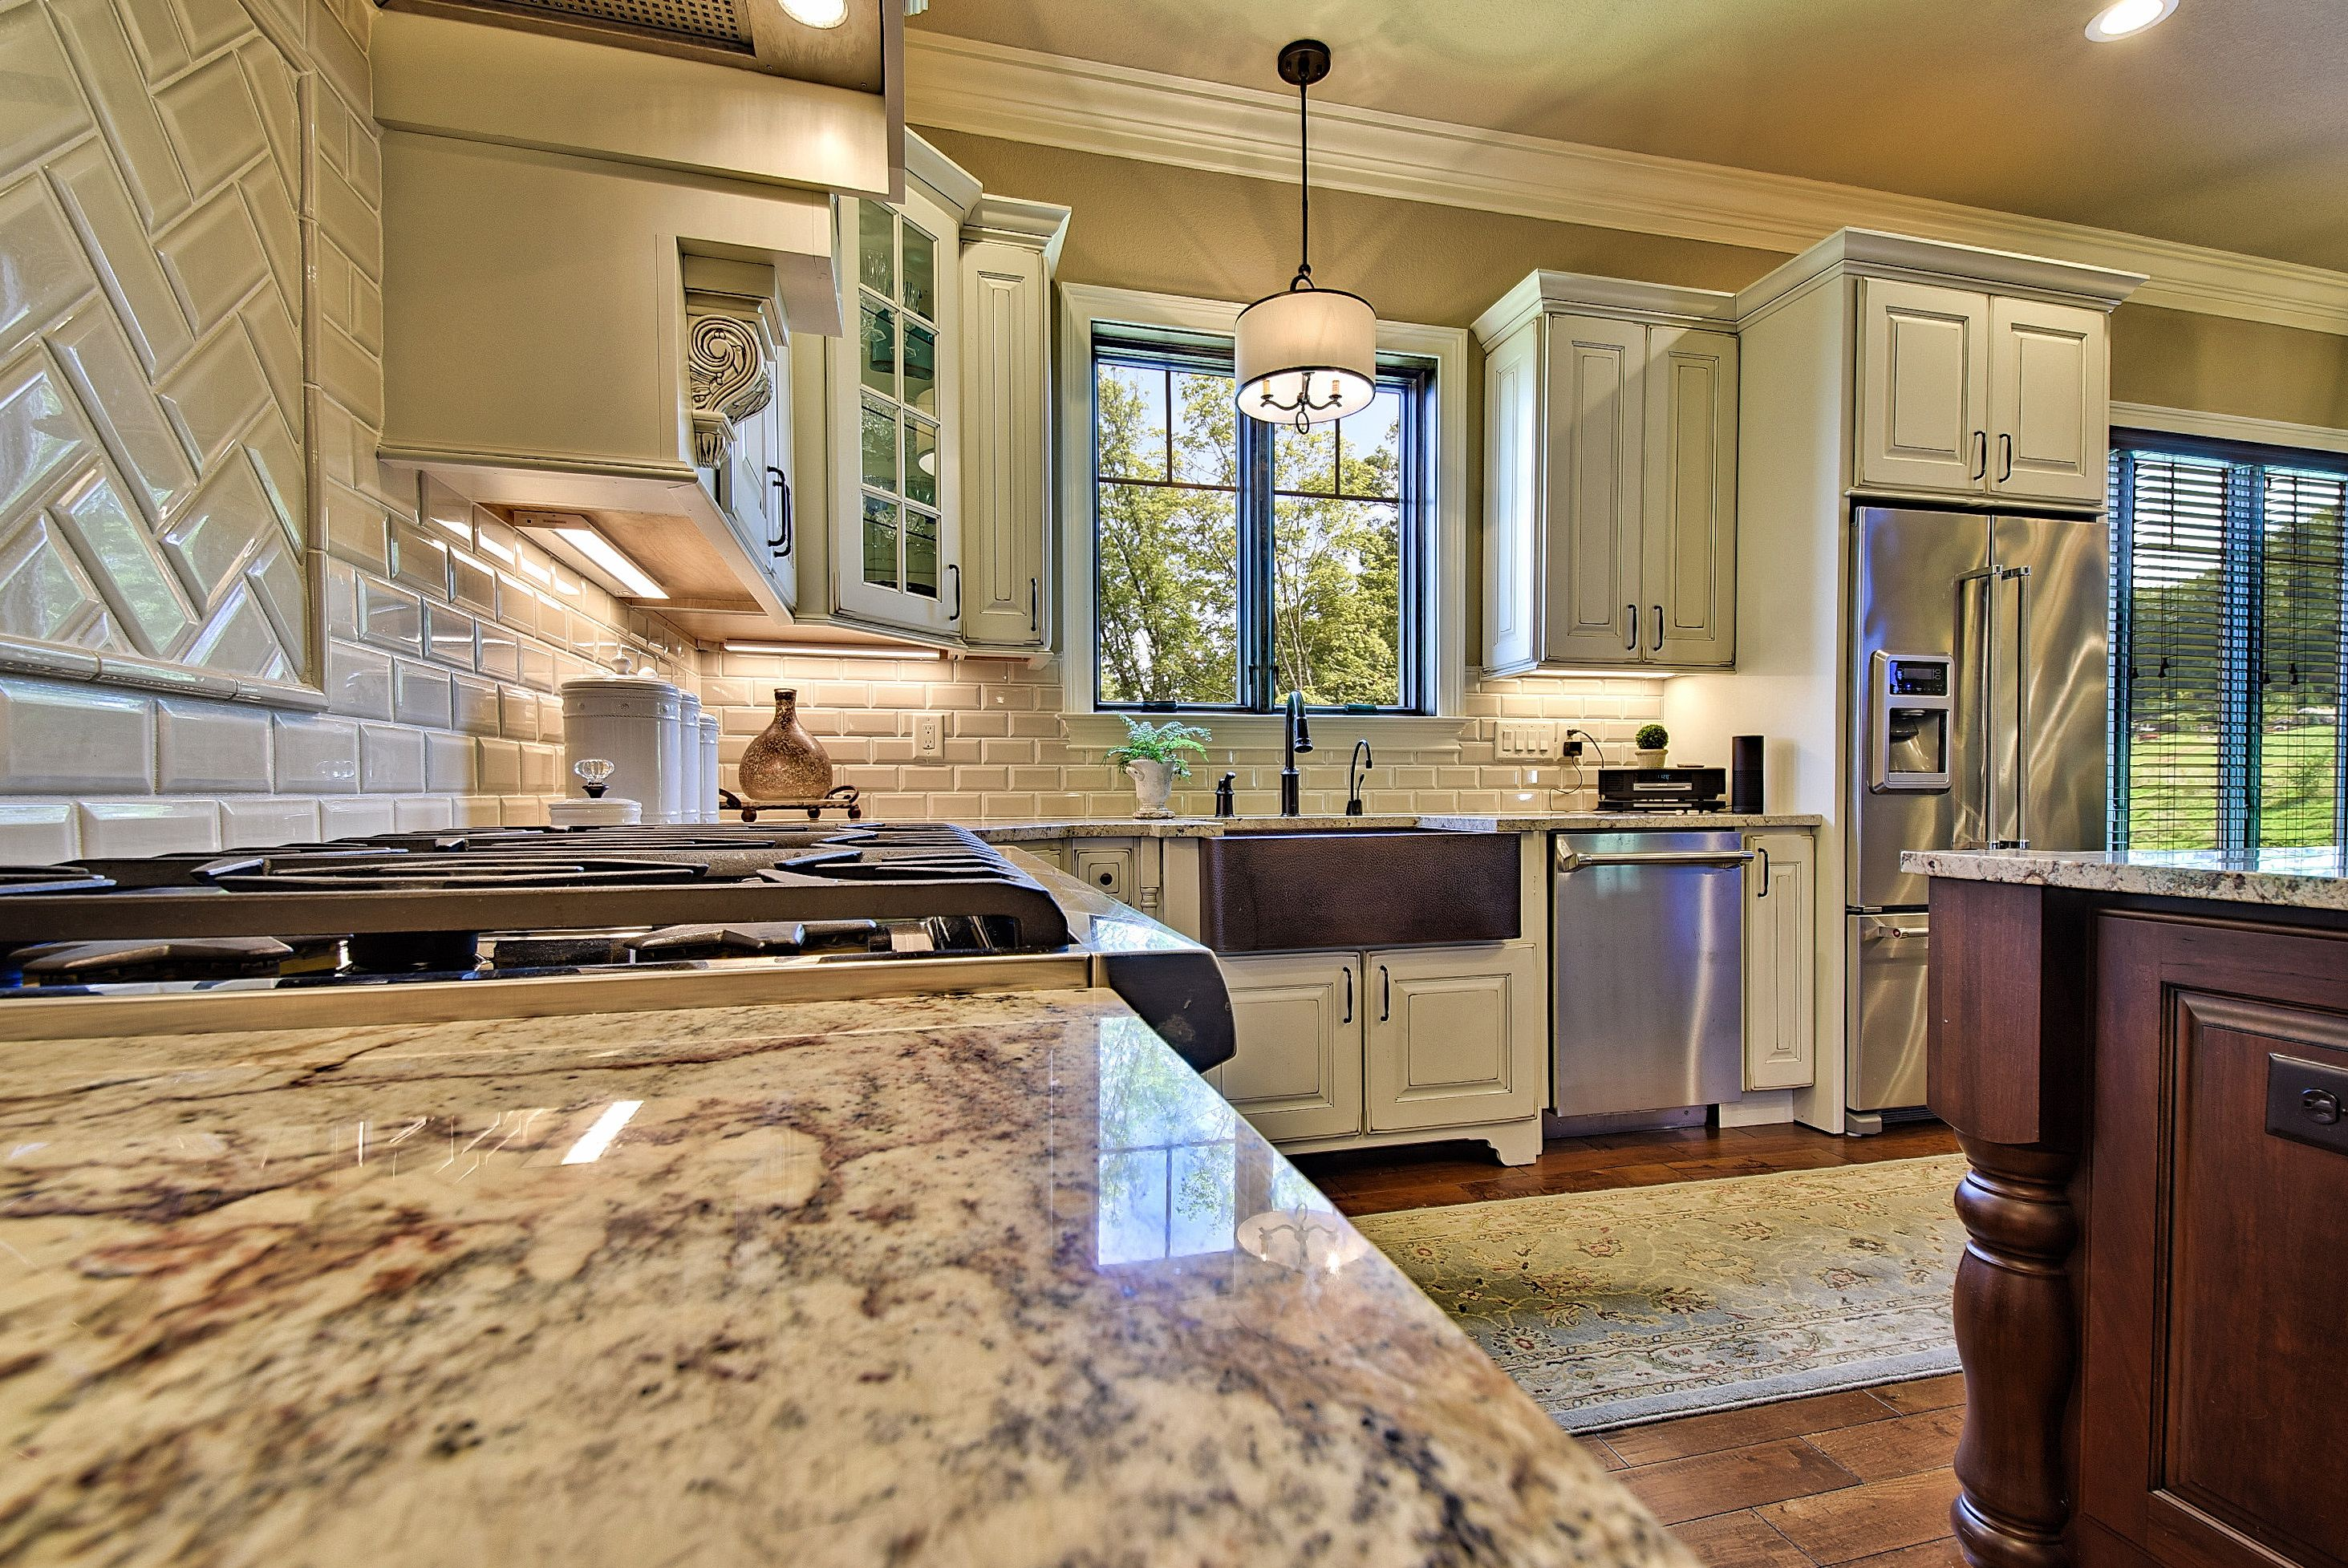 23 awesome discount kitchen cabinets johnson city tn with